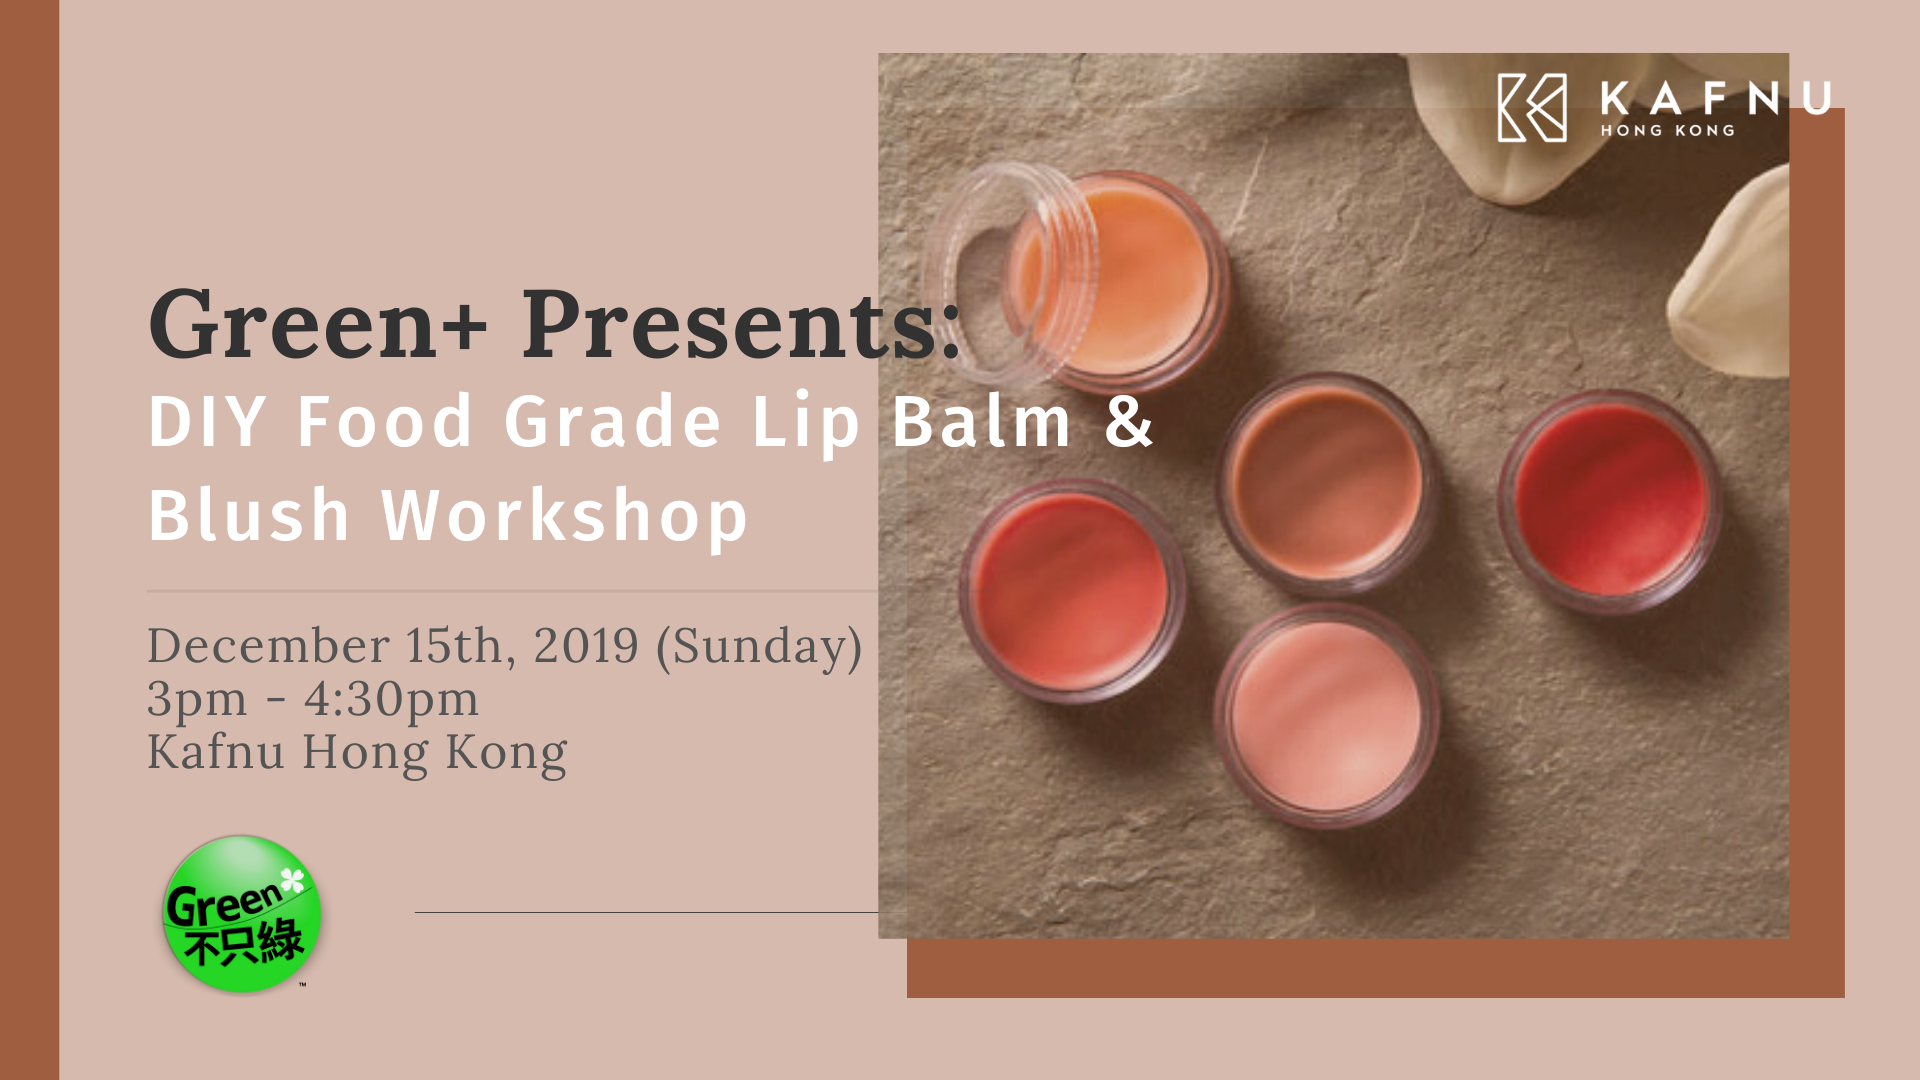 Green+ Presents:  DIY Food Grade Lip Balm & Blush Workshop